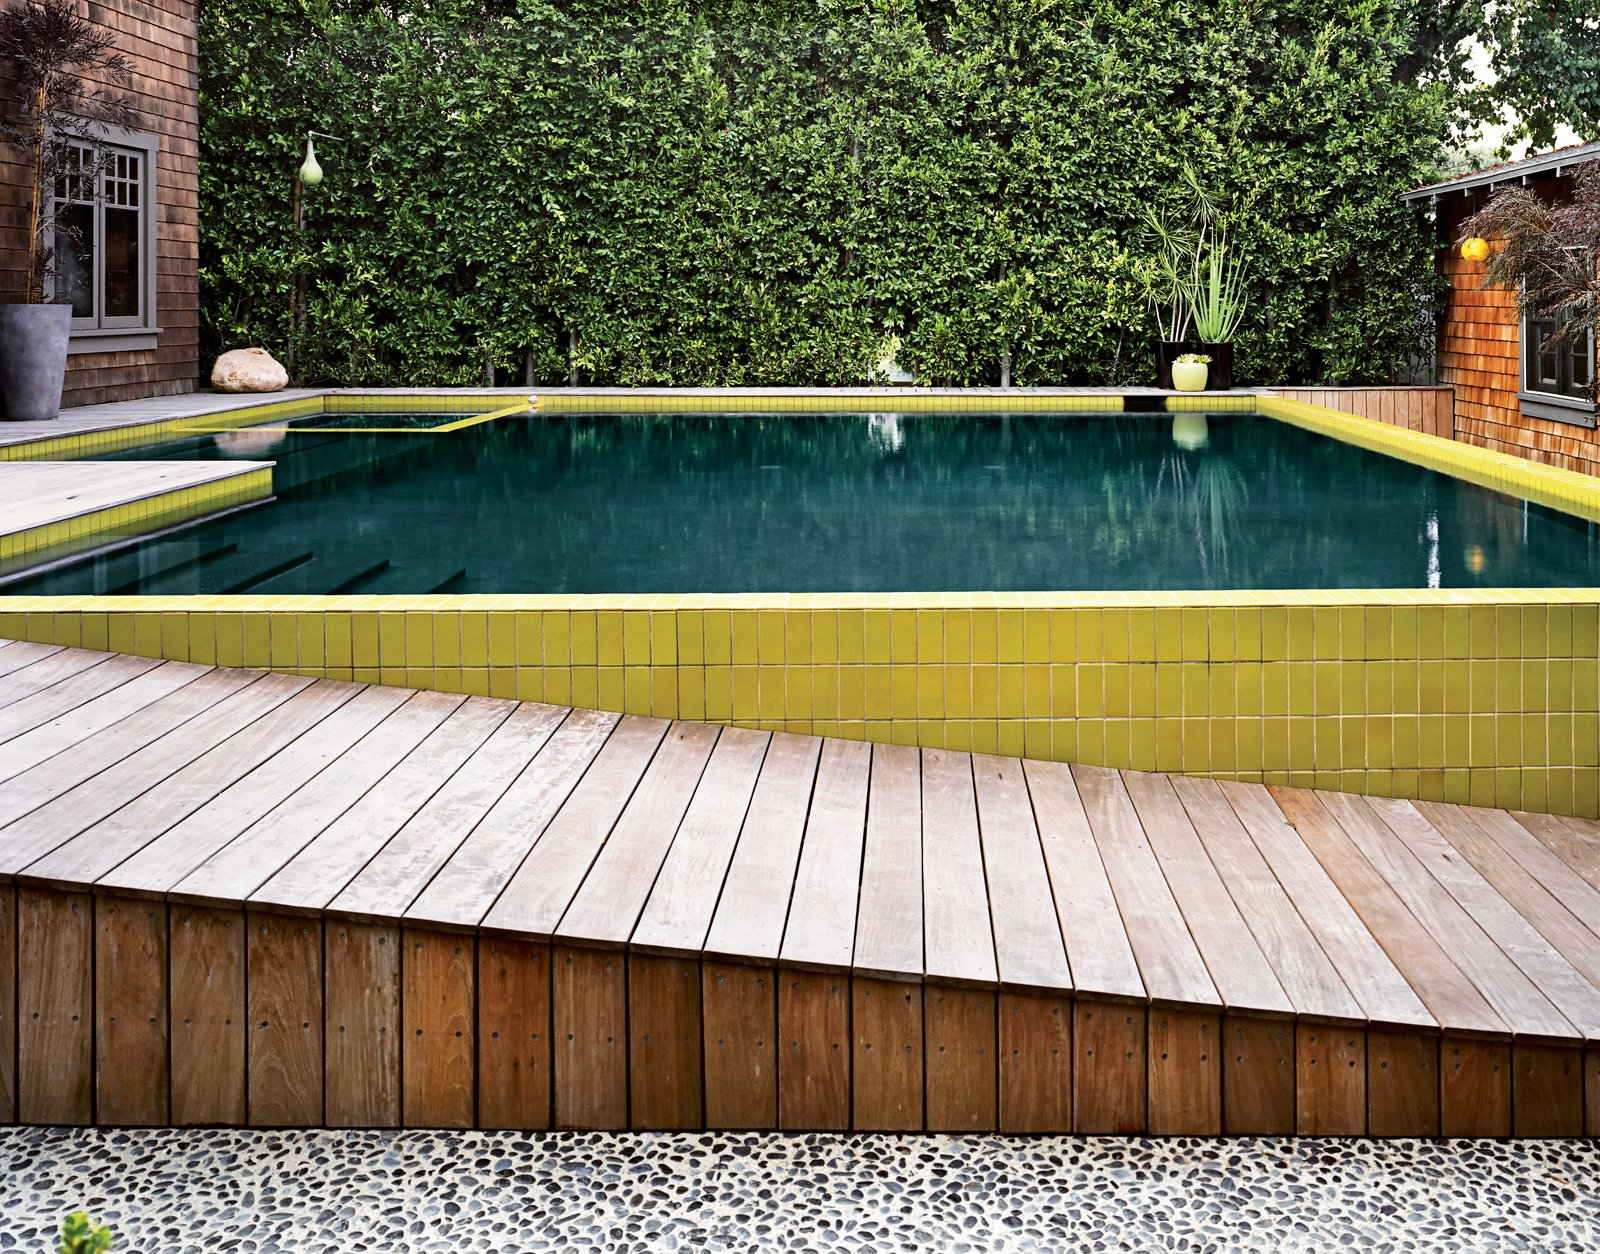 #pooldesign #pool #layered #exterior #outside #modern #minimal #color #tile #wood #stone #elevated #aesthetic #2008 #SantaMonica #California    outdoors